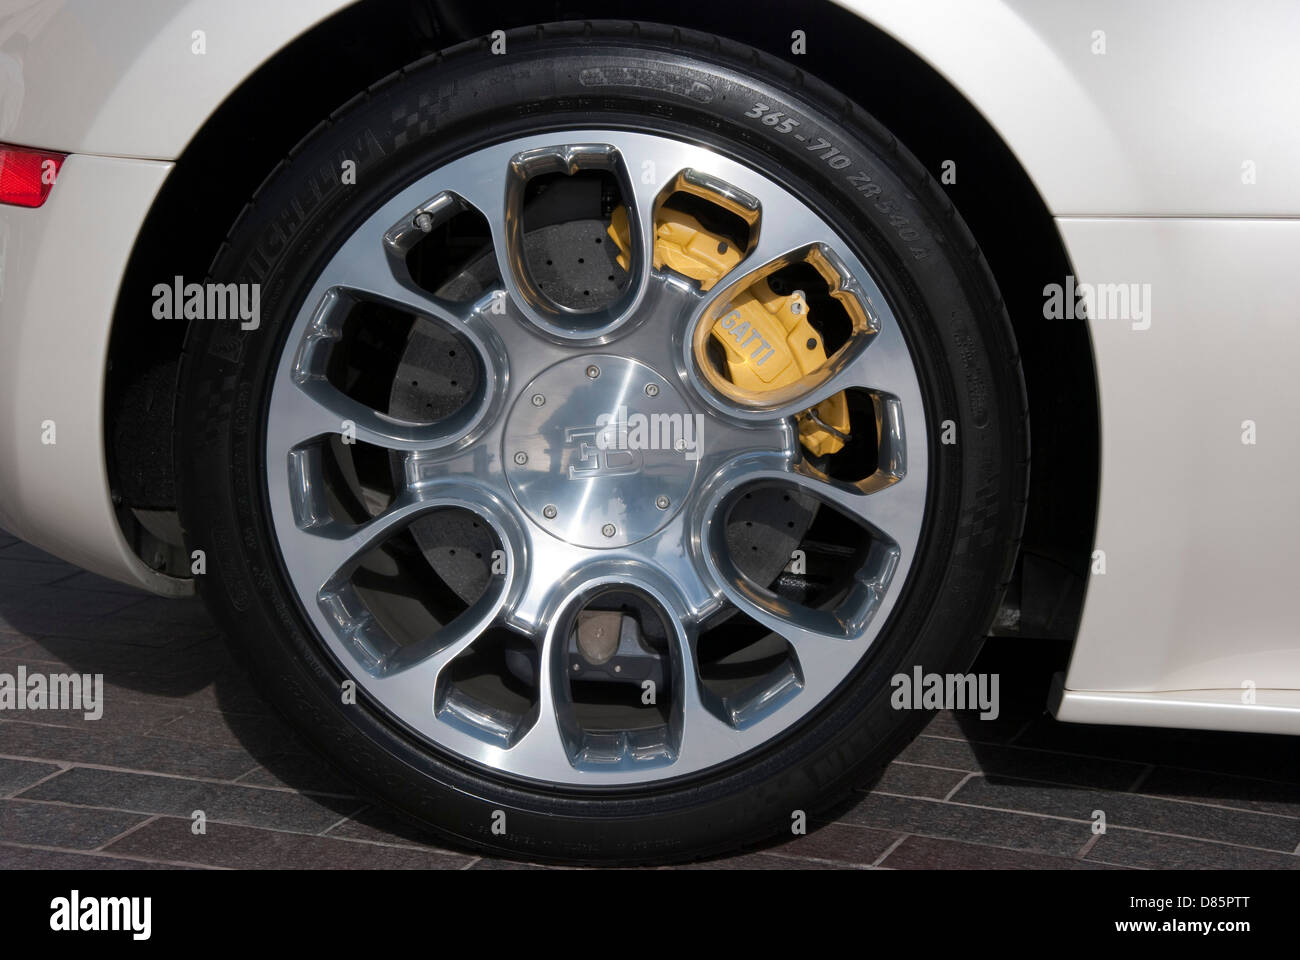 Bugatti Veyron Eb Sports Car Rear Alloy Wheel Tyre Stock Photo